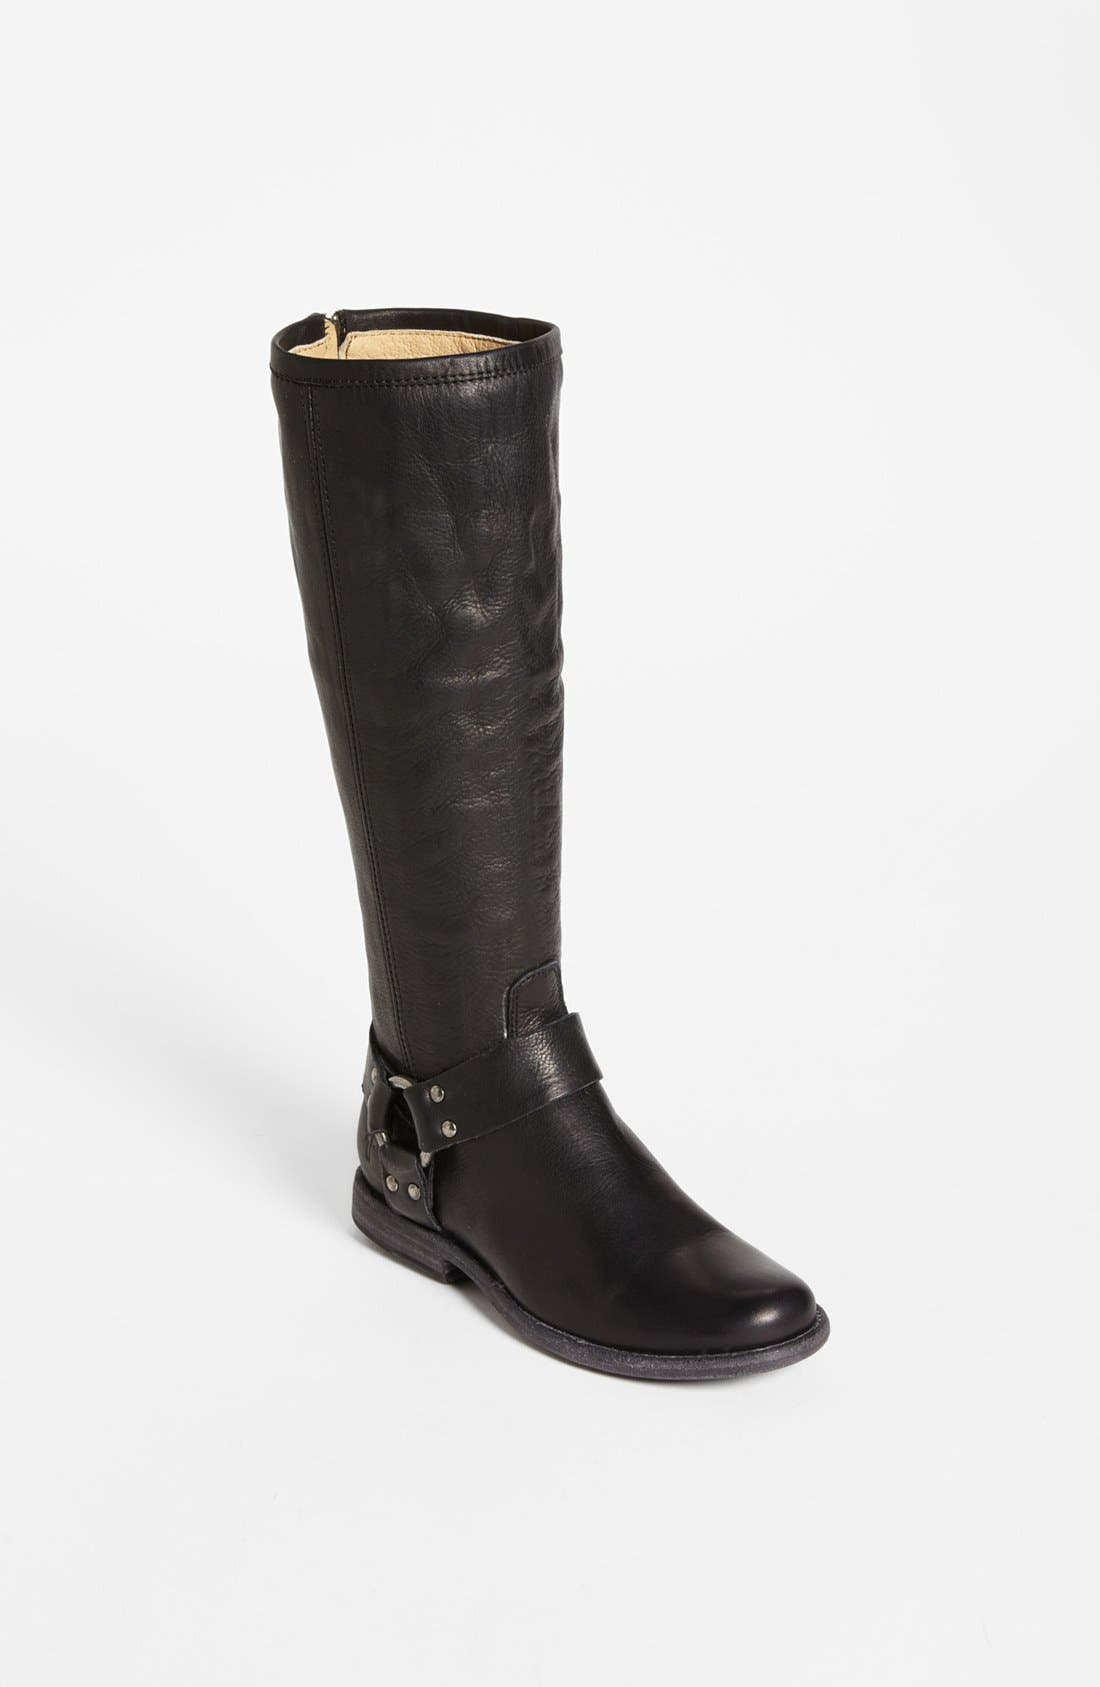 Main Image - Frye 'Phillip Harness' Tall Washed Leather Riding Boot (Women)